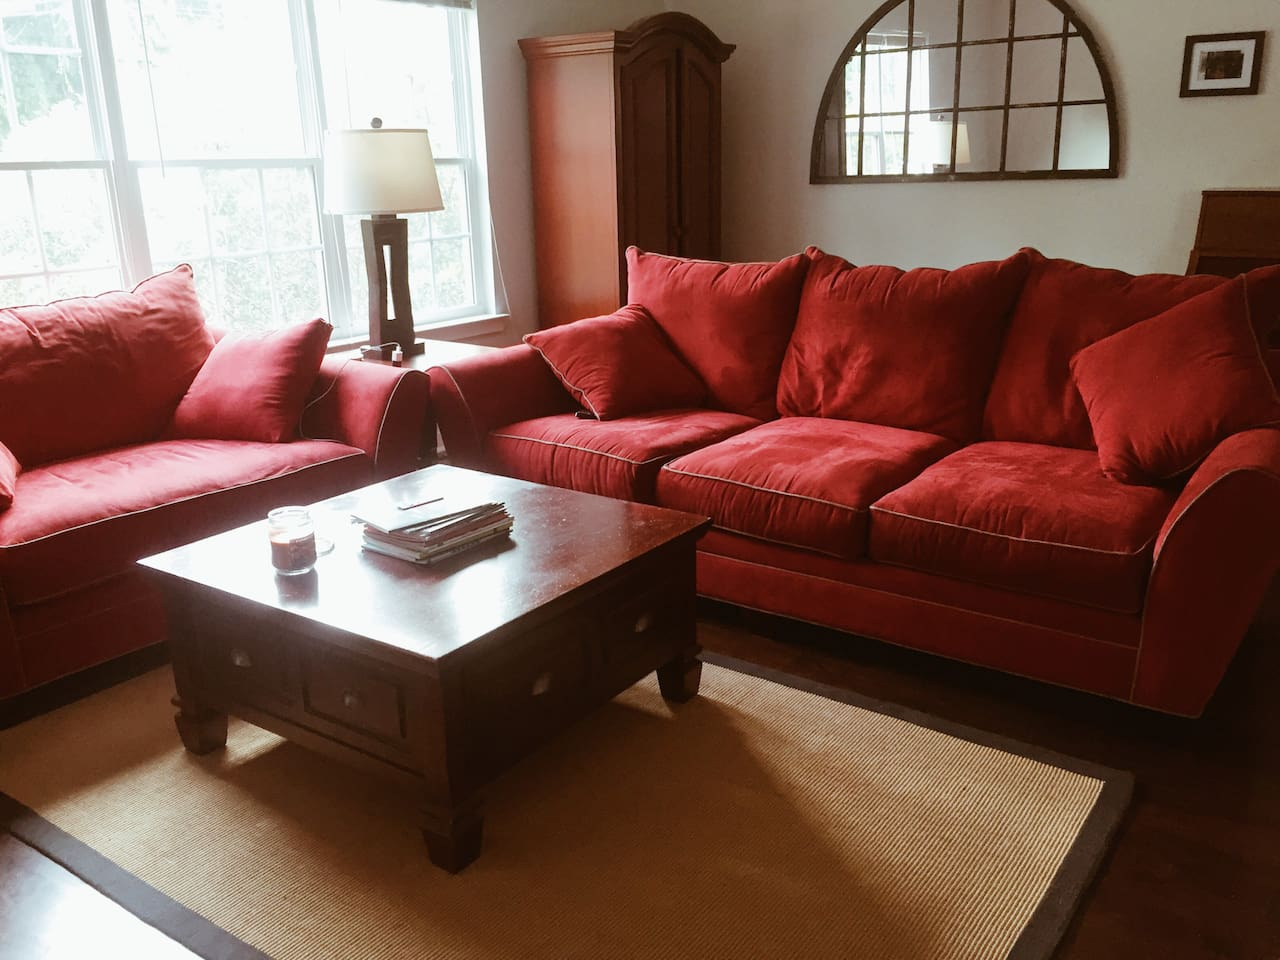 Make yourself comfortable on our big red couches. (They're huge!)